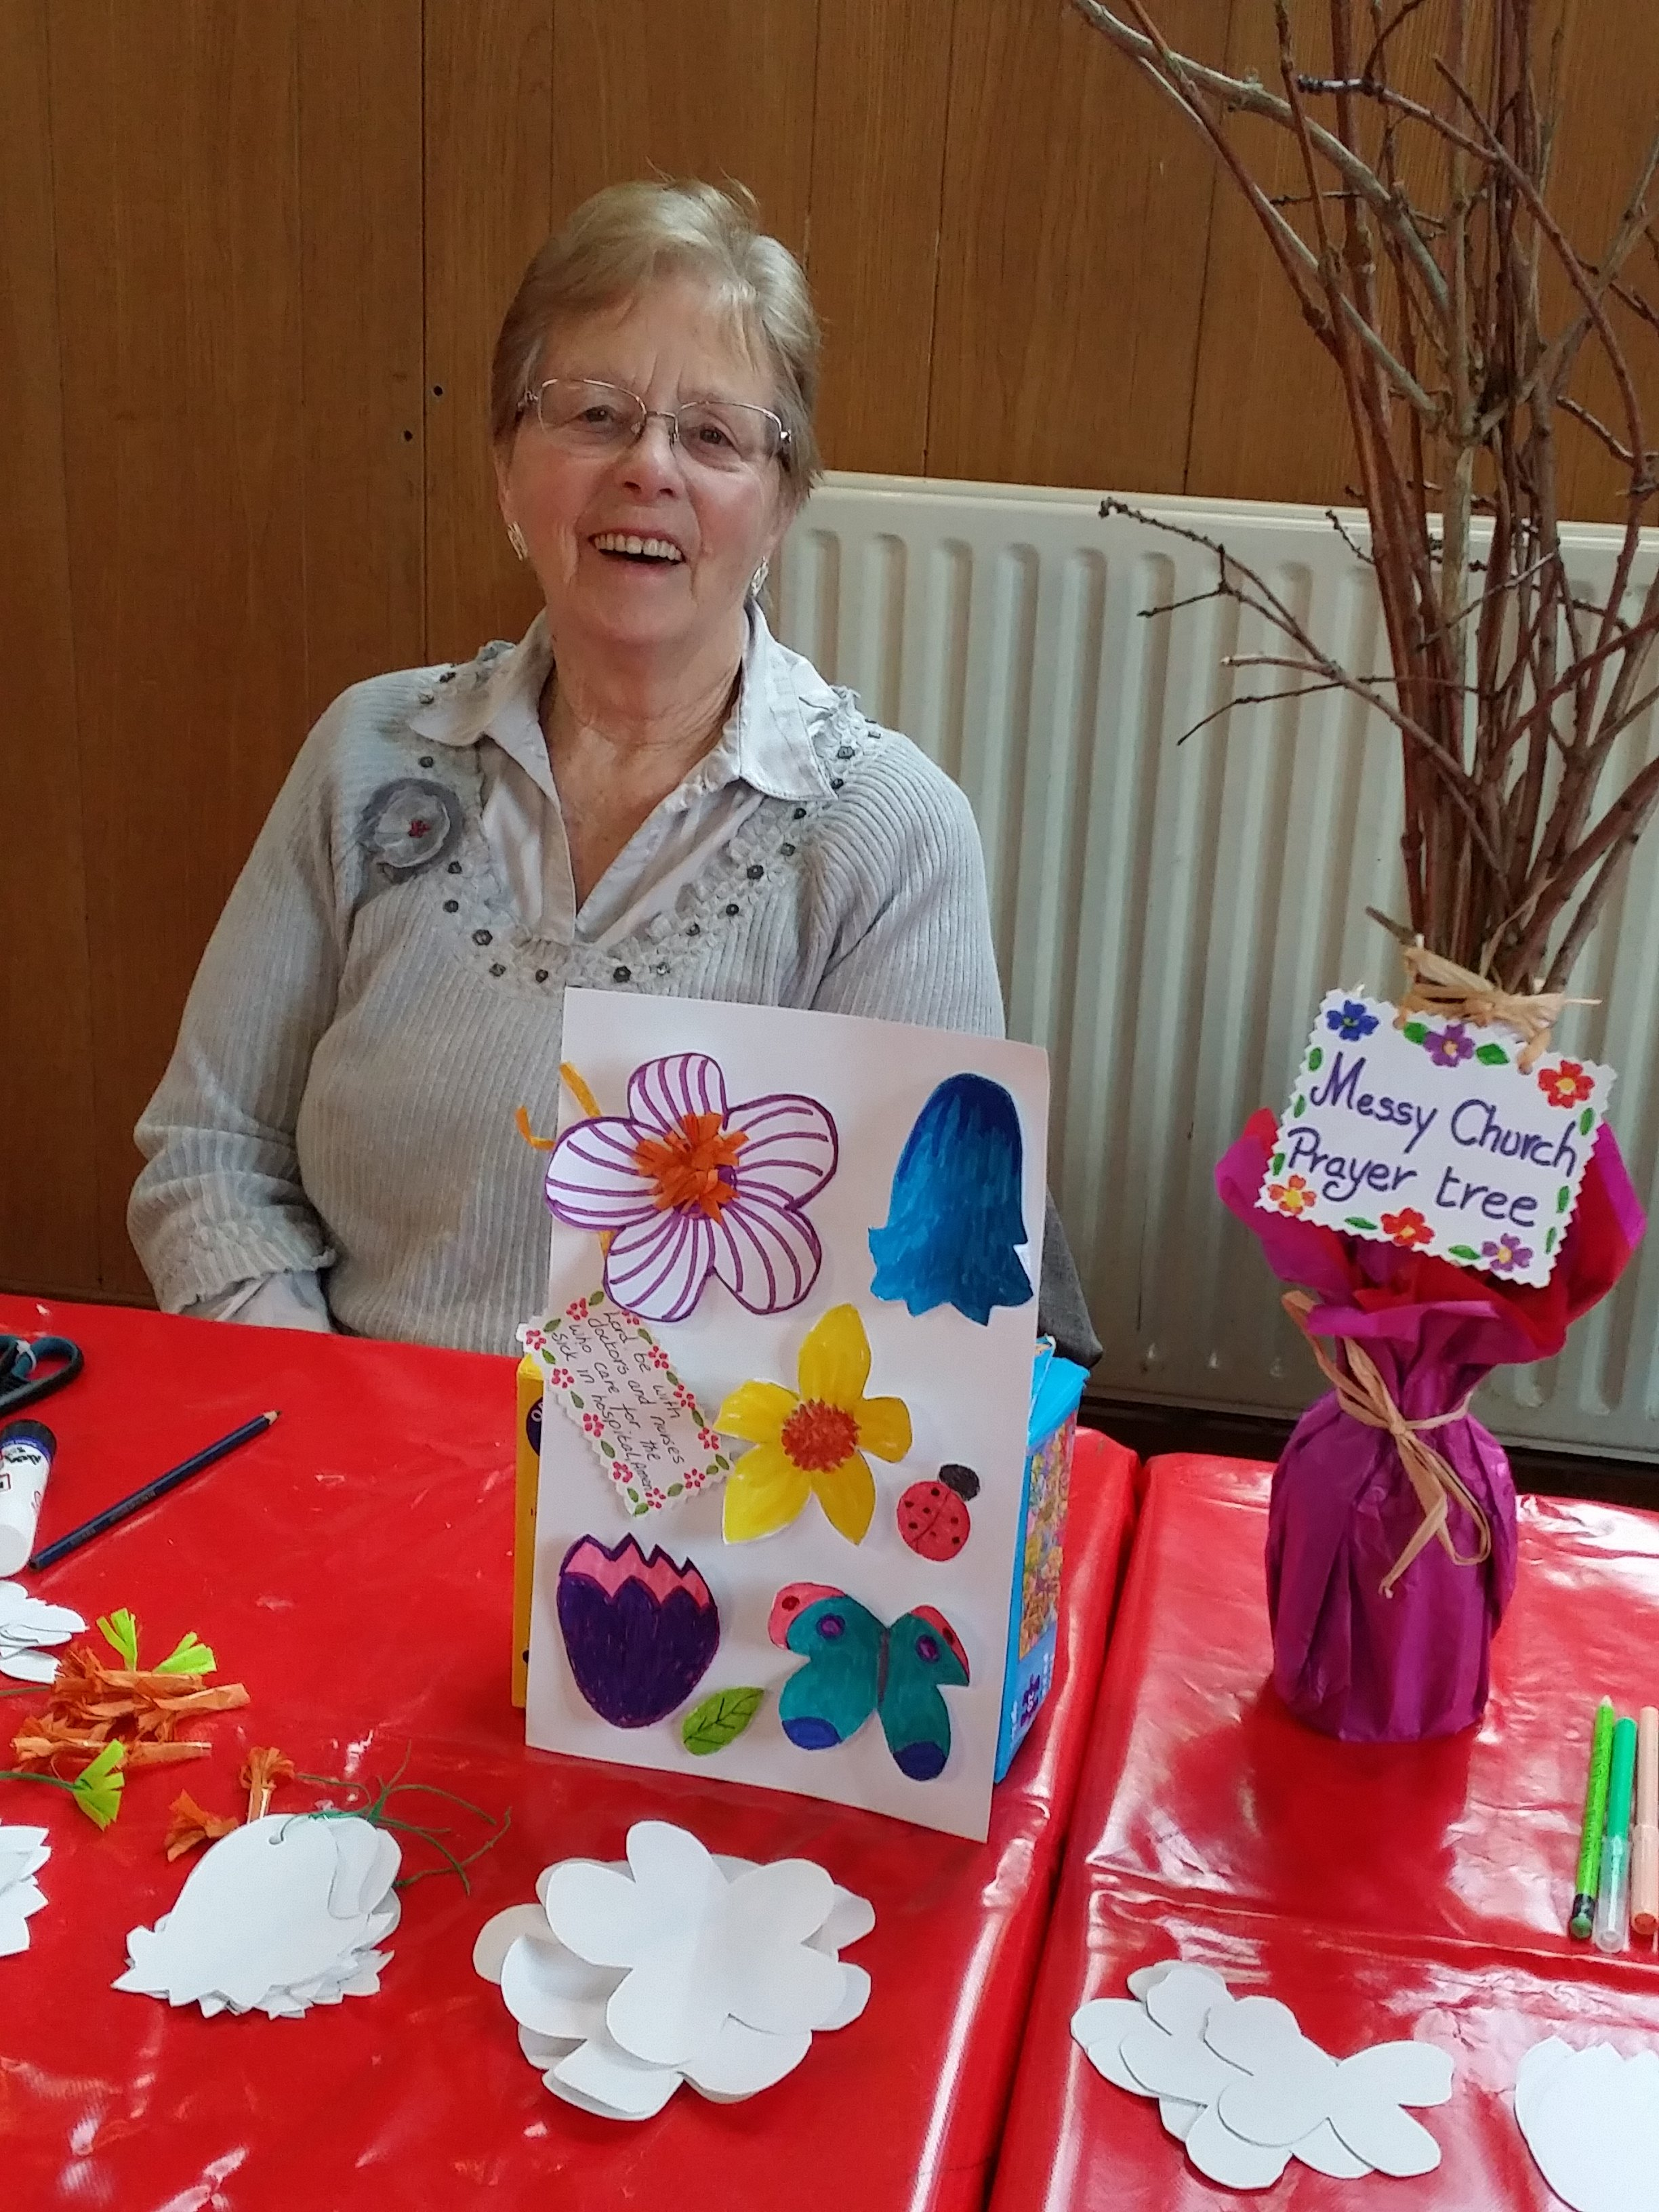 2017-03-10 Hilda helping with the prayer tree at Messy Church